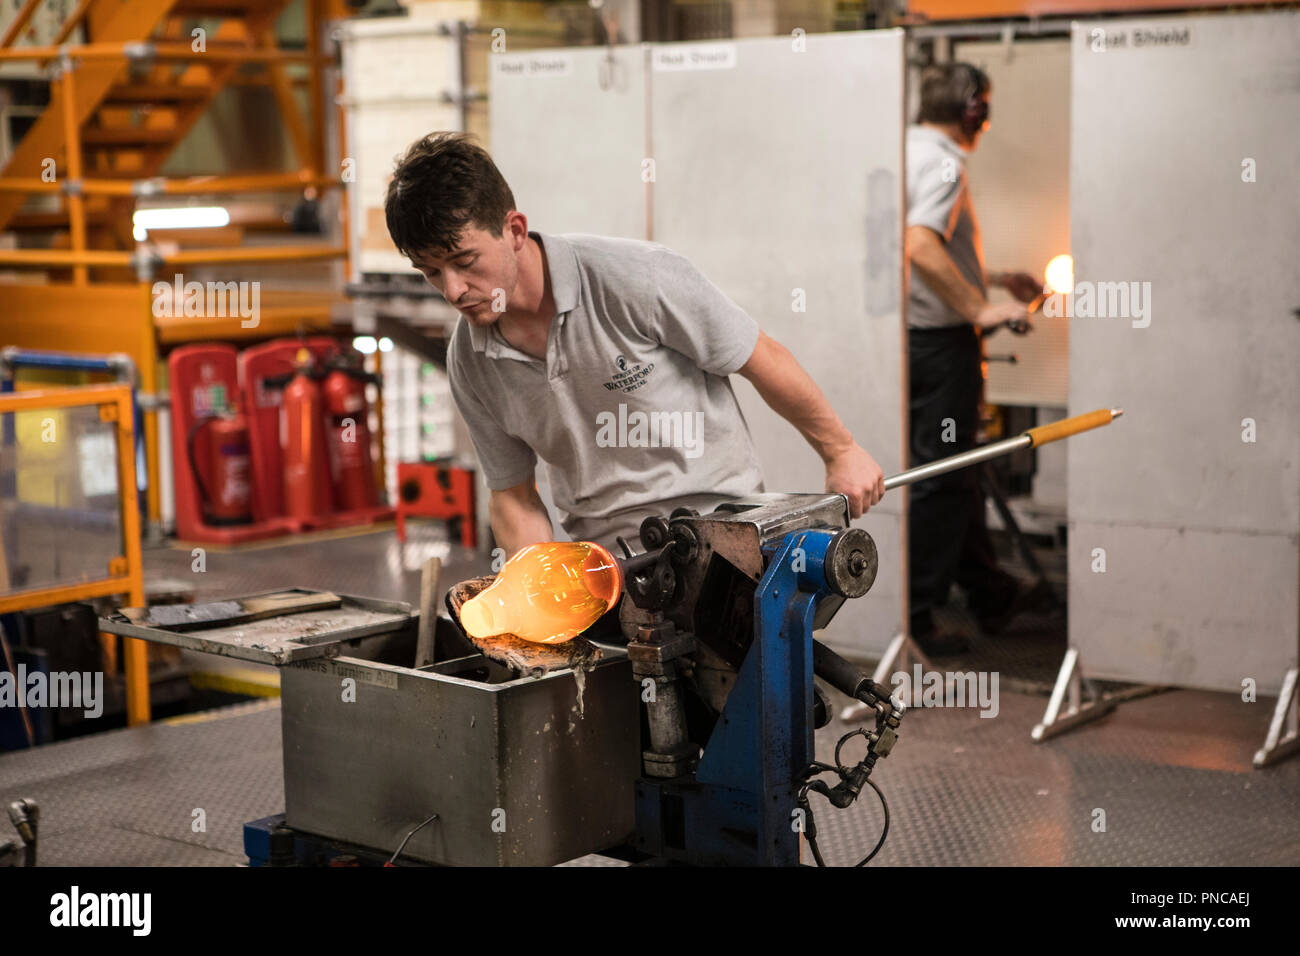 Waterford, Republic of Ireland - August 15th 2018: A craftsman in the Blowing Department in the Waterford Crystal factory, in the city of Waterford, R - Stock Image